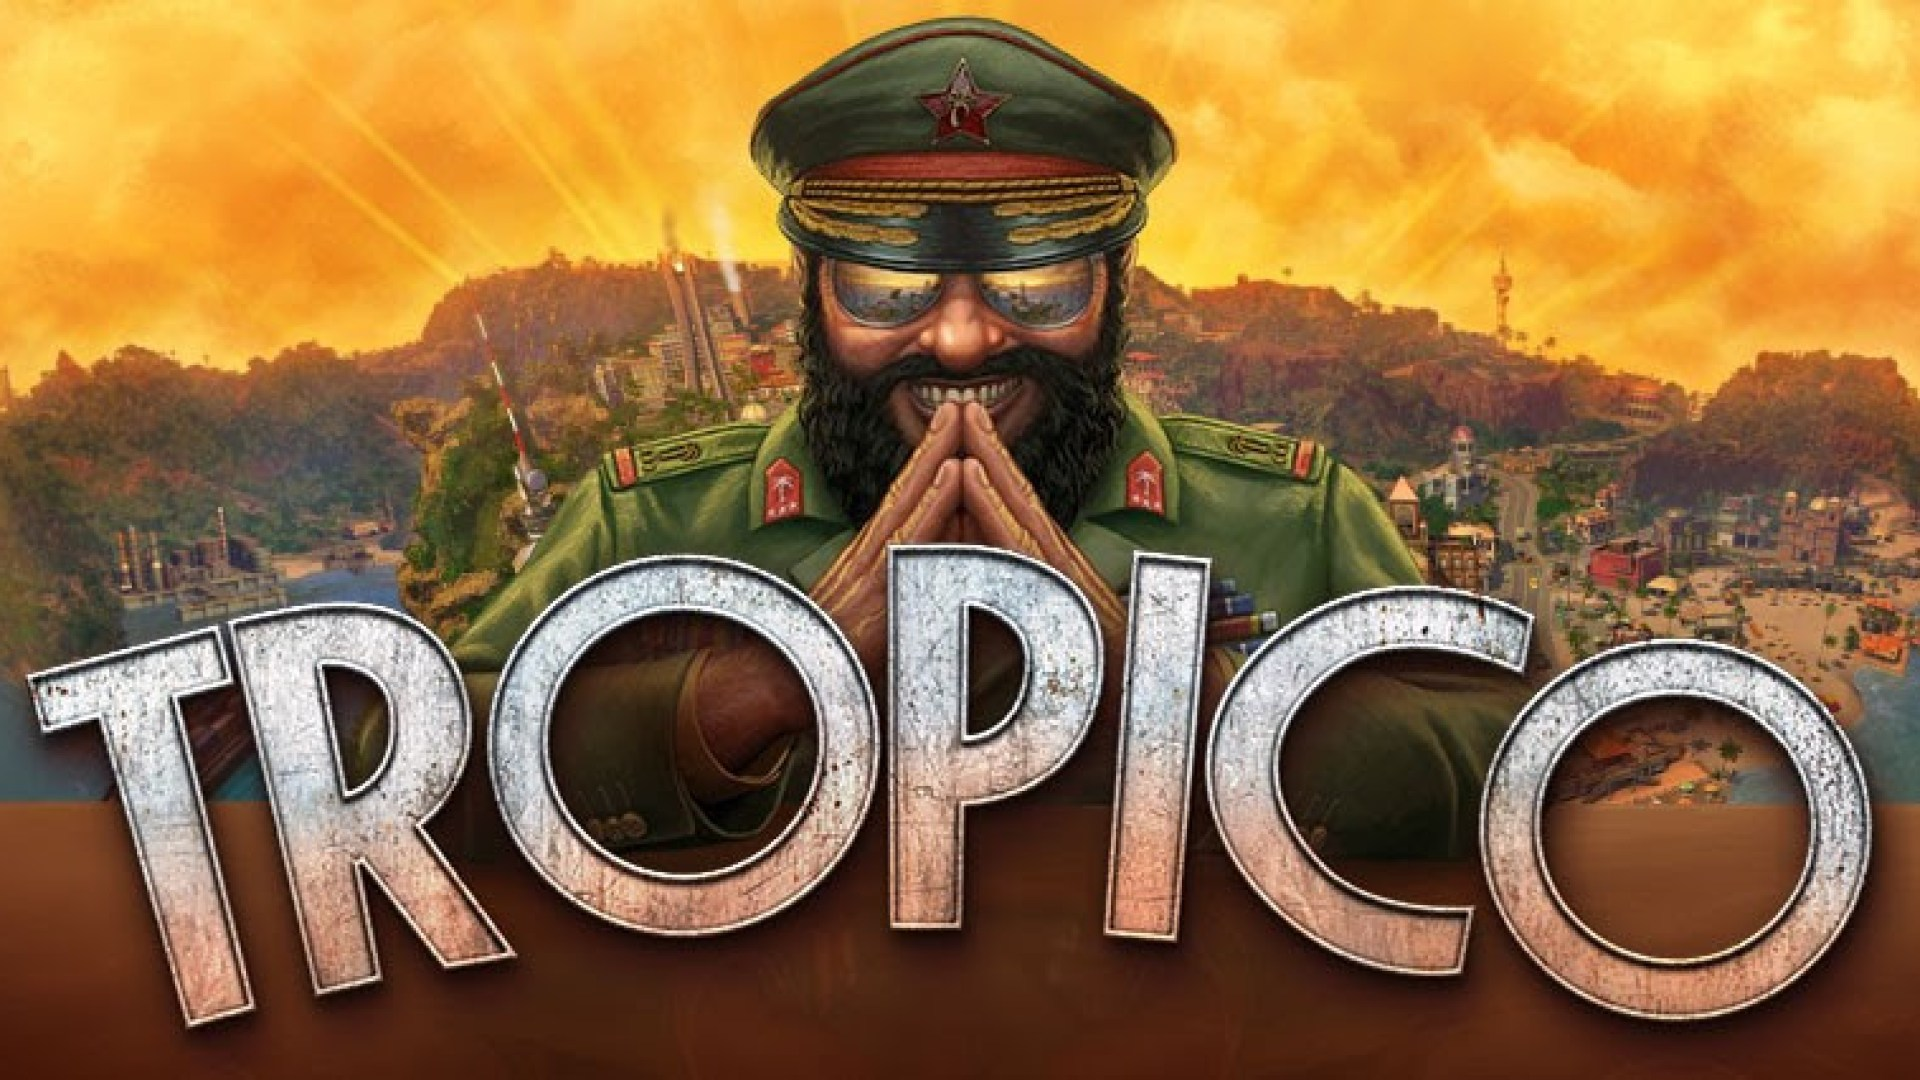 Tropico comes to iPad on December 18, iPhone in 2019